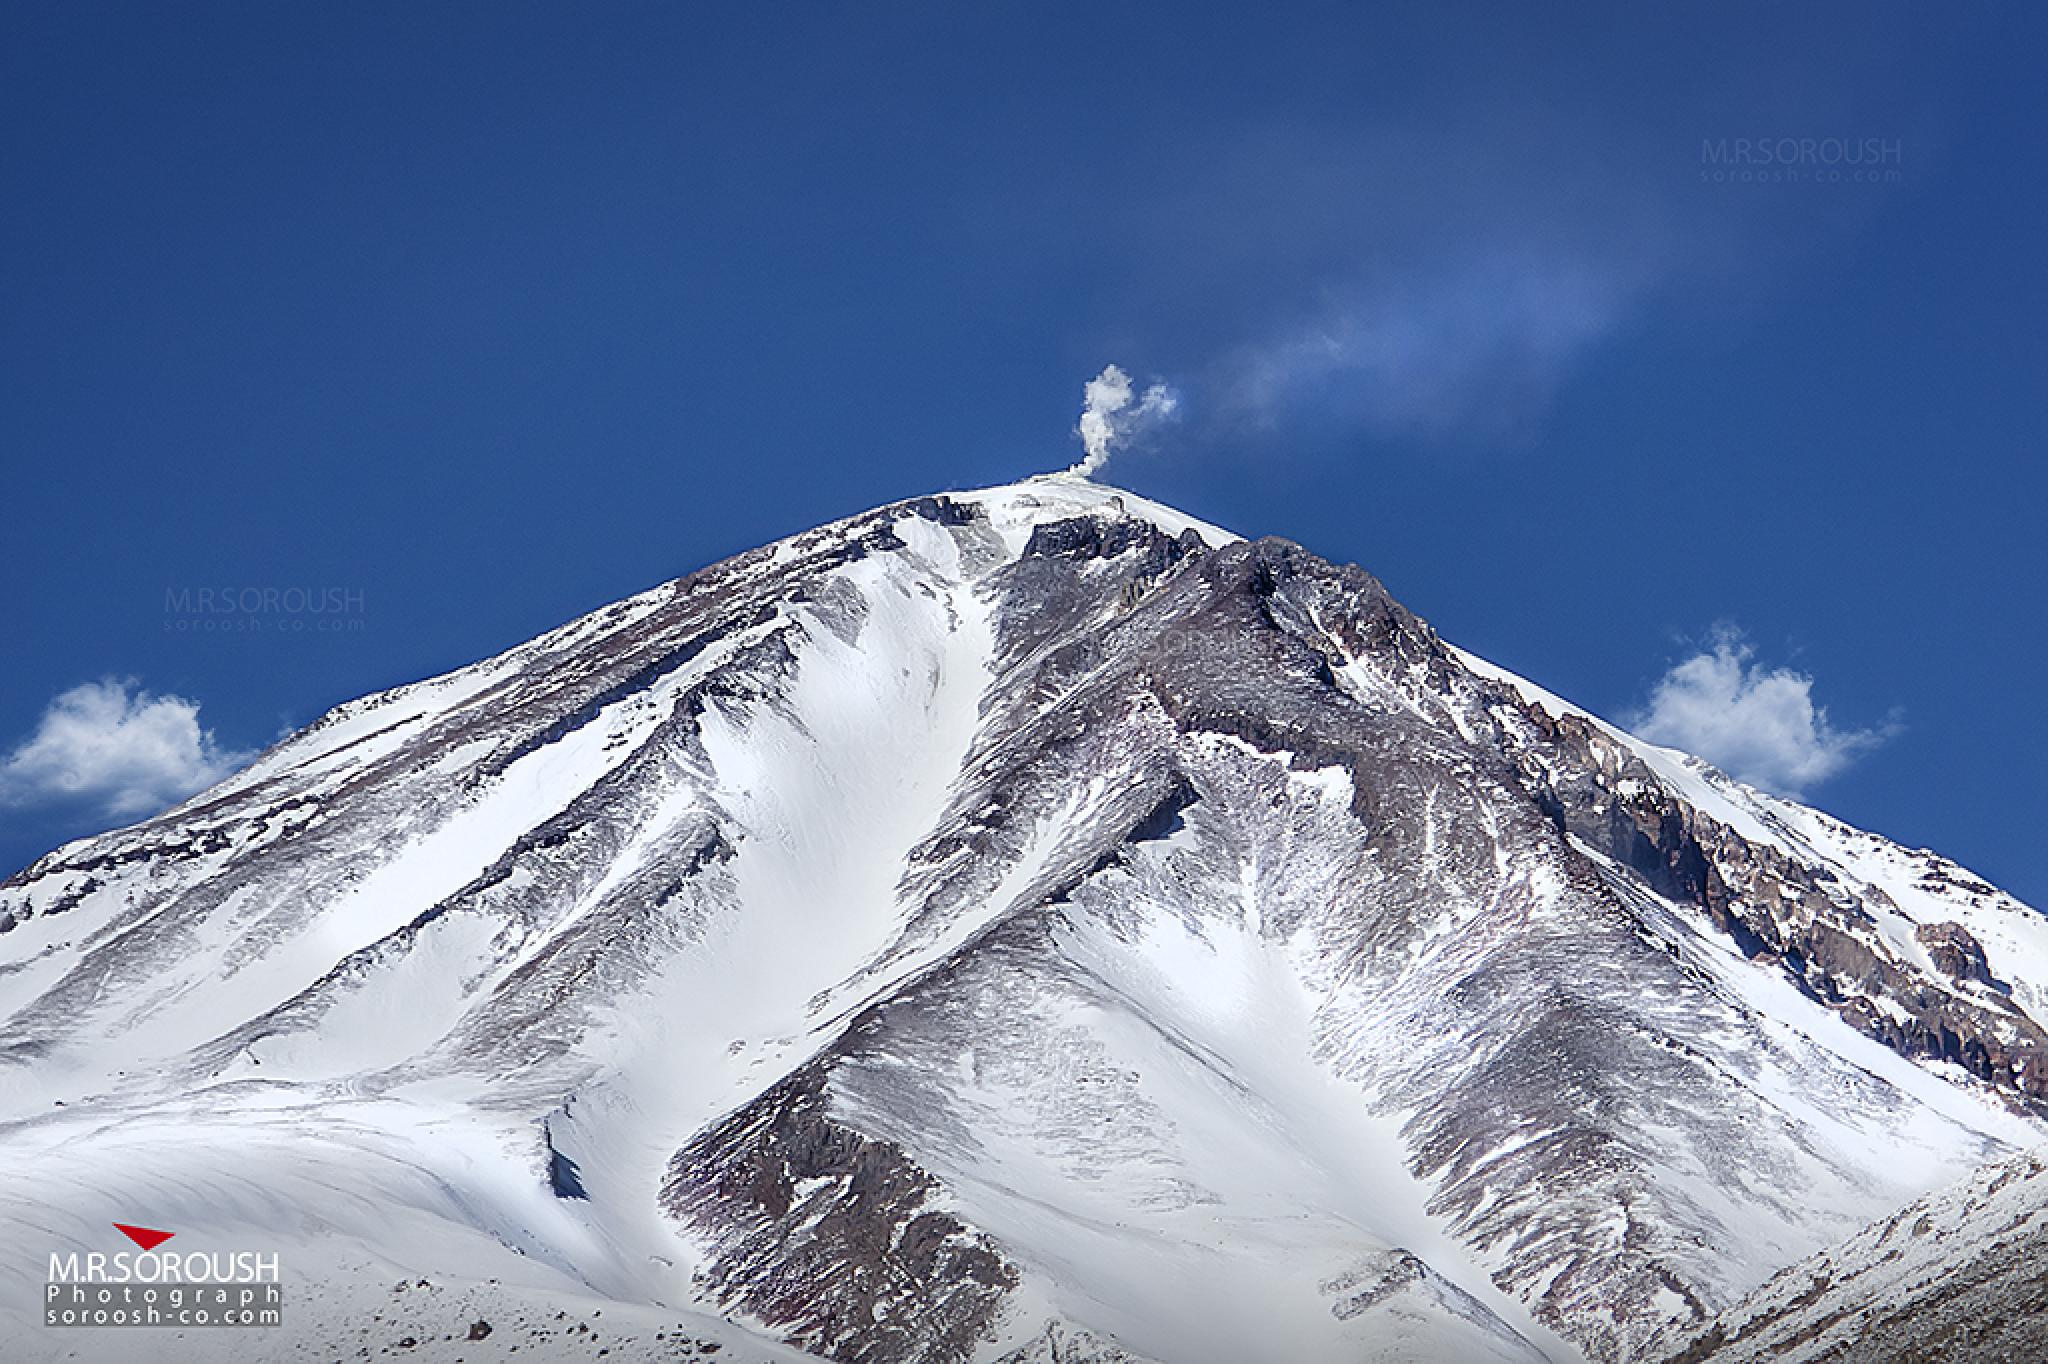 Mount Damavand by Mohammad Reza Soroush